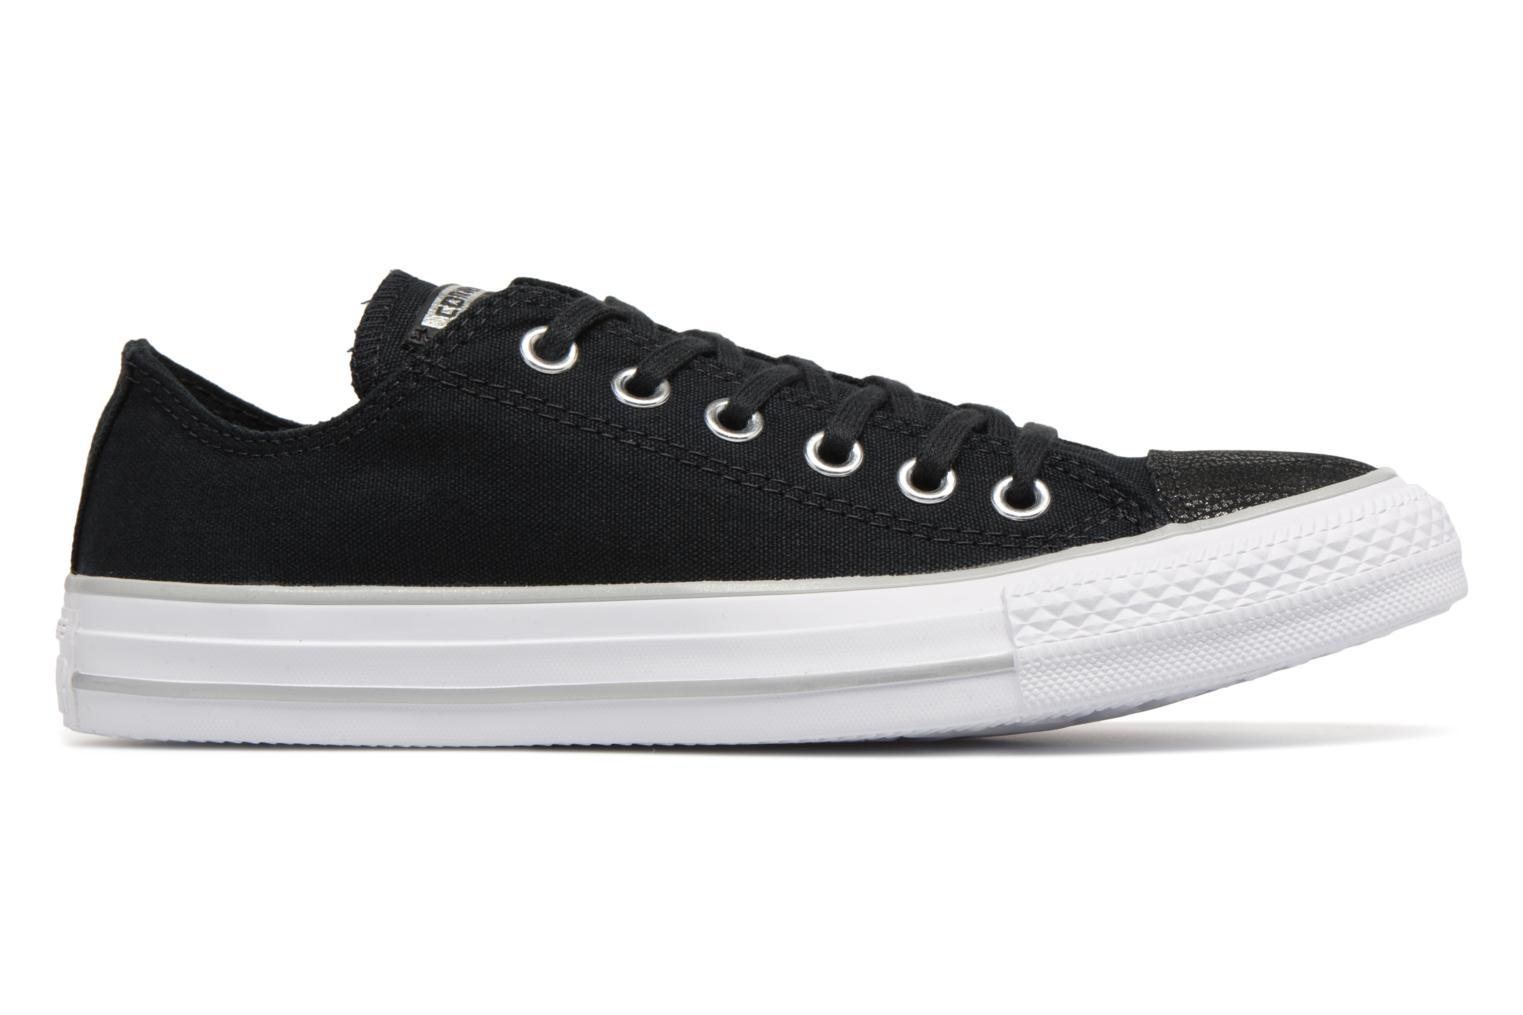 c5317d0dd82d5a ... white Taylor Chuck Metallic Black Toecap Star Ox All Tipped Converse  silver 7Awq6 ...